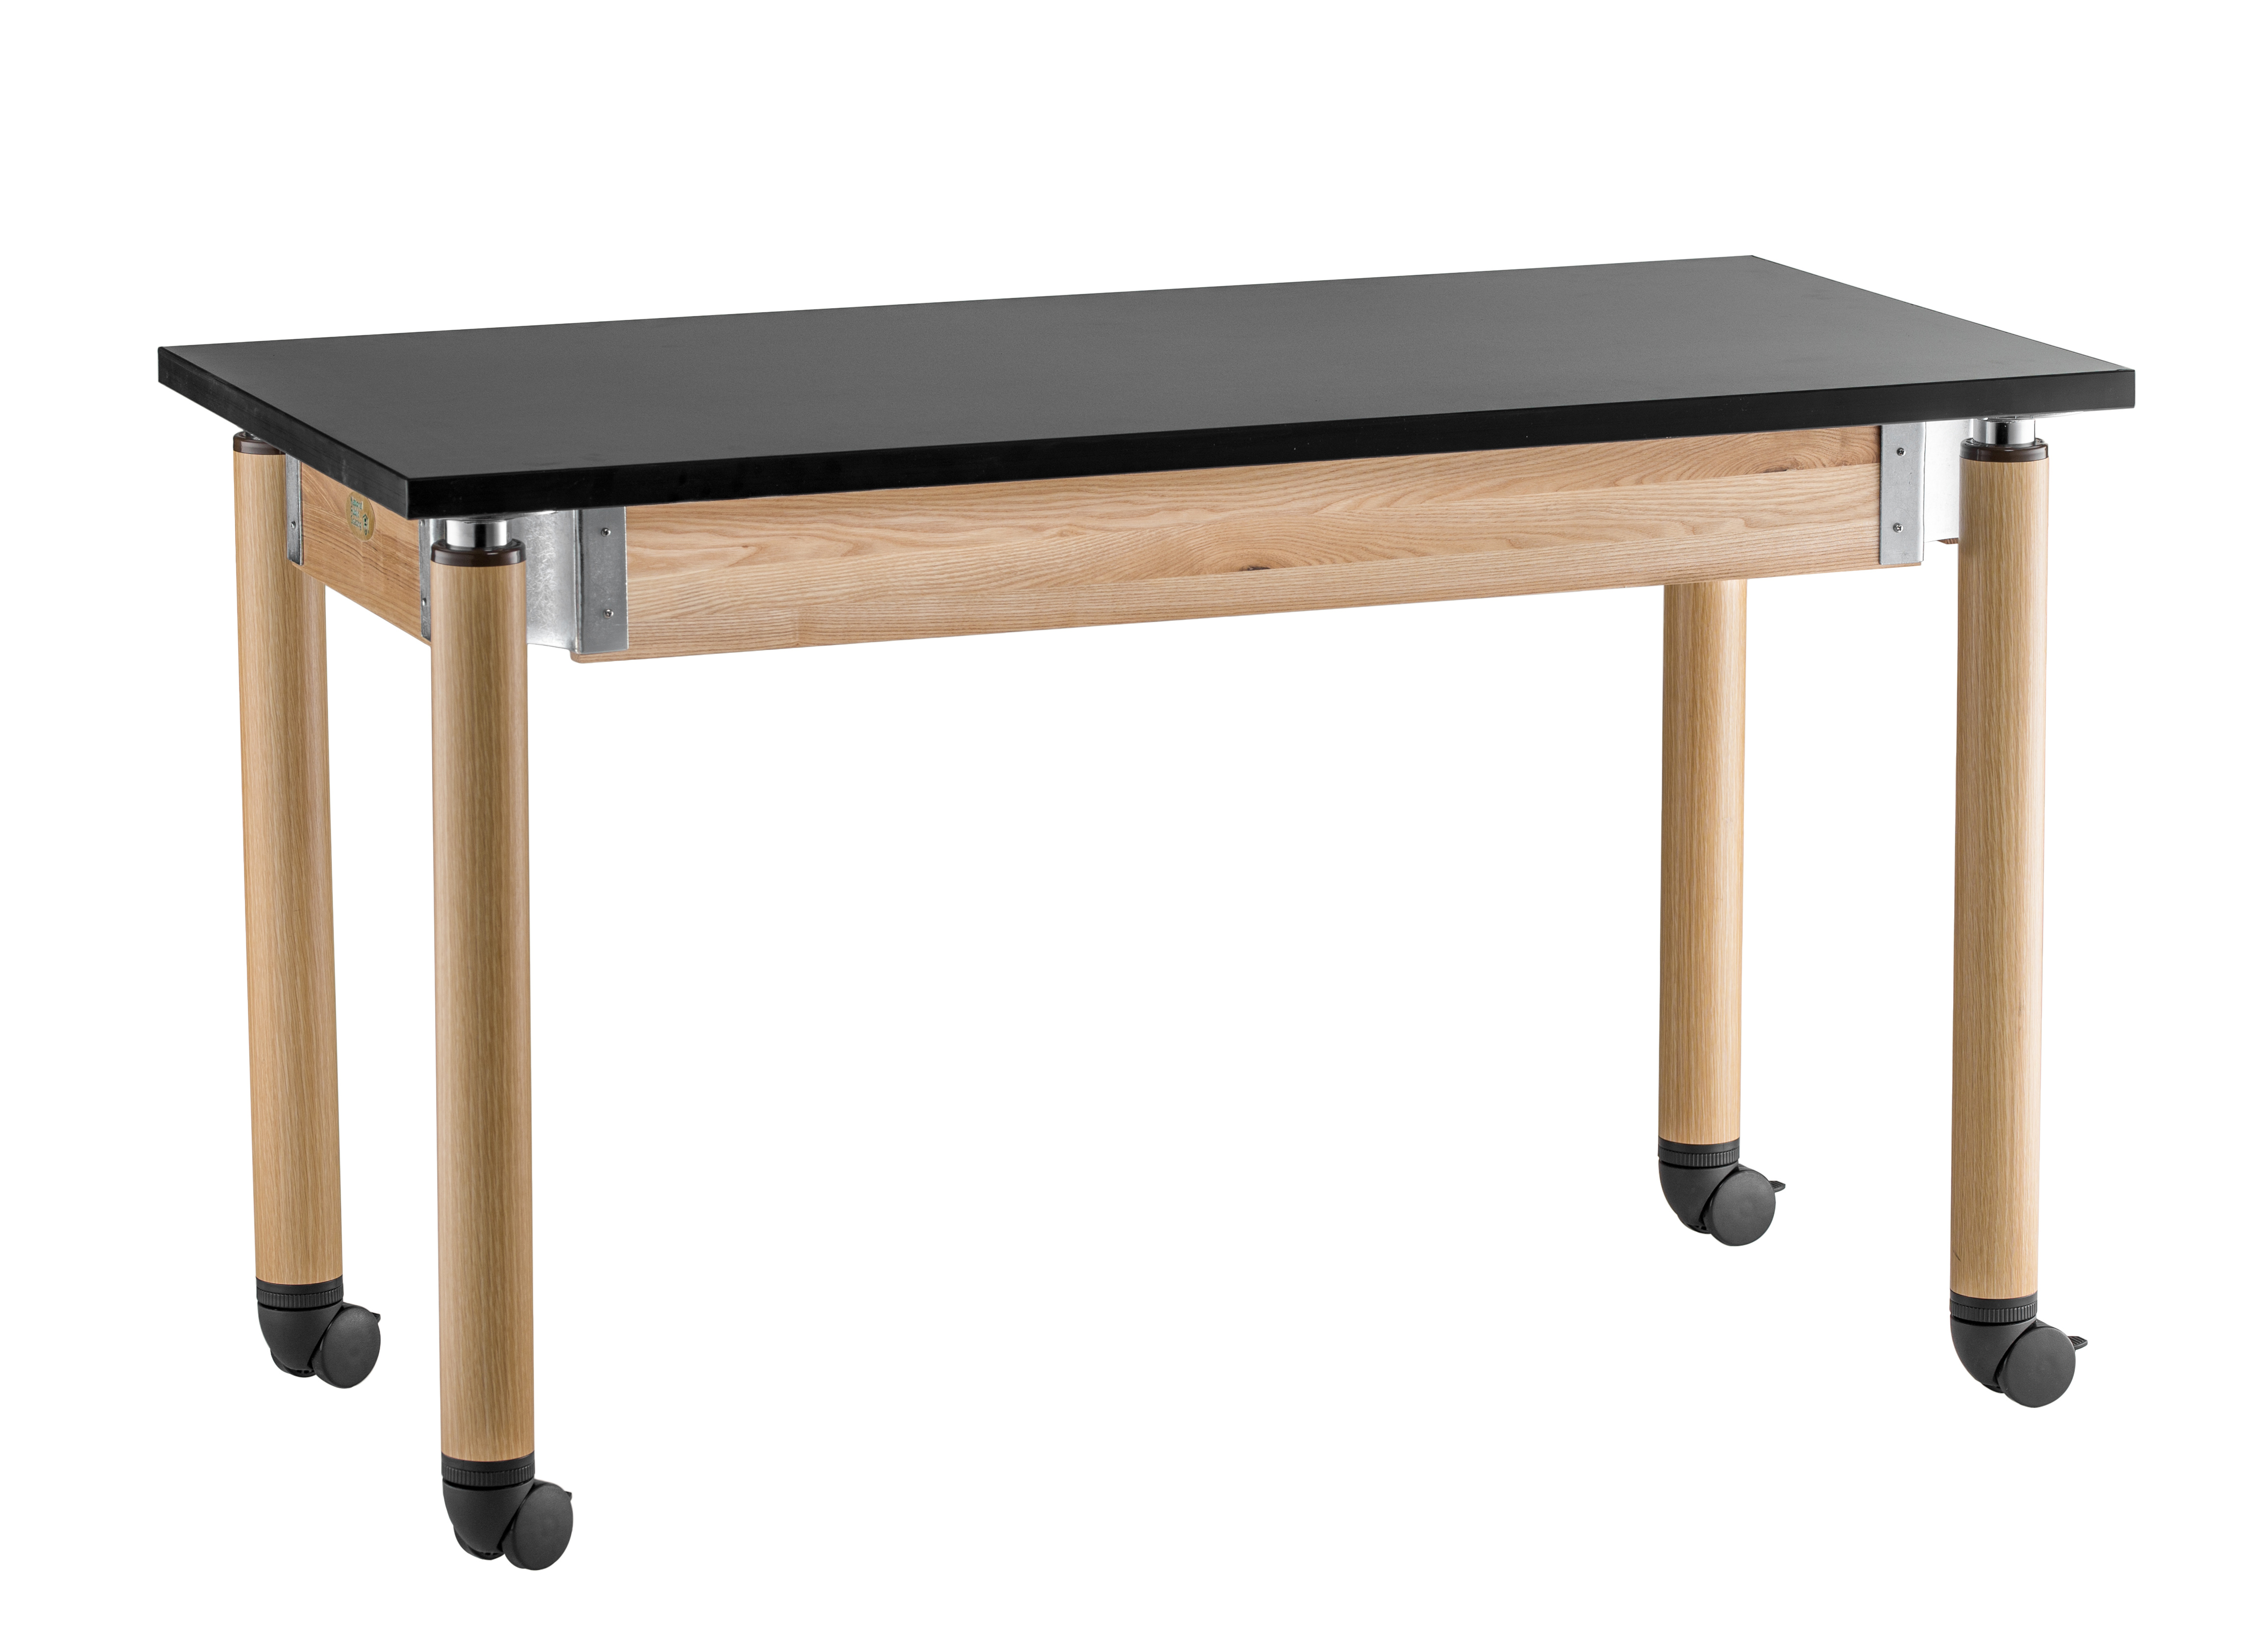 NPS Adjustable Height Chemical Resistant Science Lab Table with Casters